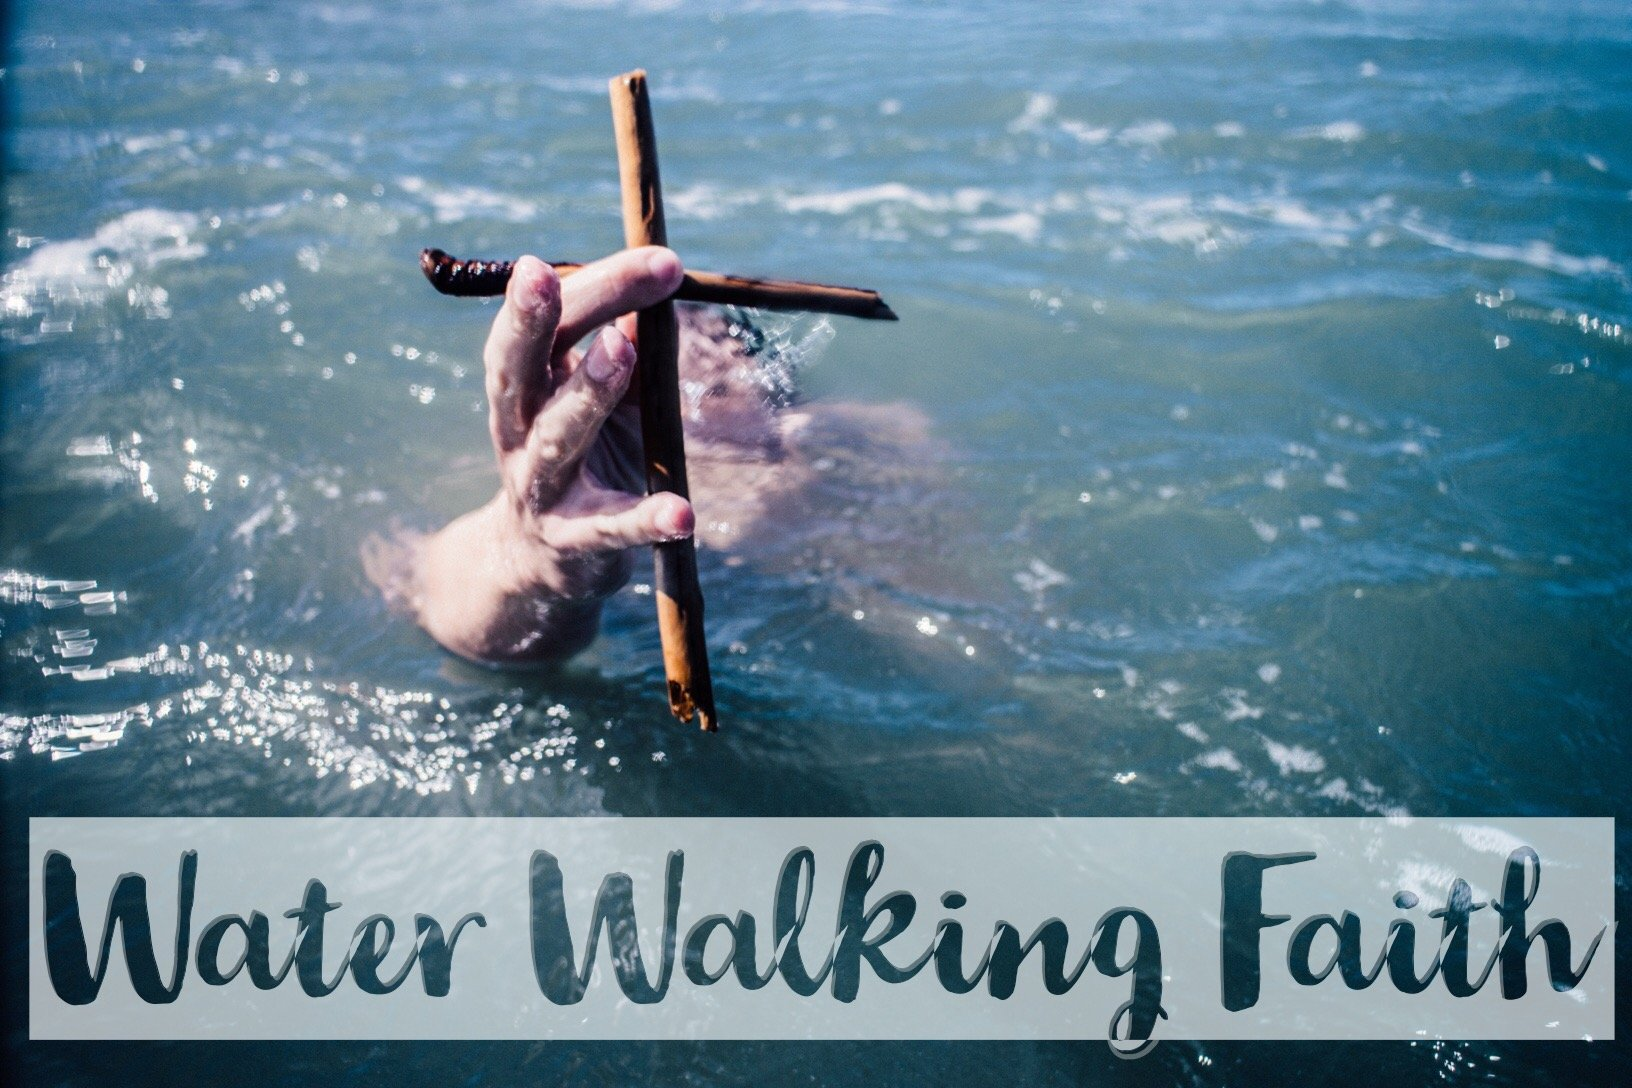 Water Walking Faith - Liberty Church Baton Rouge